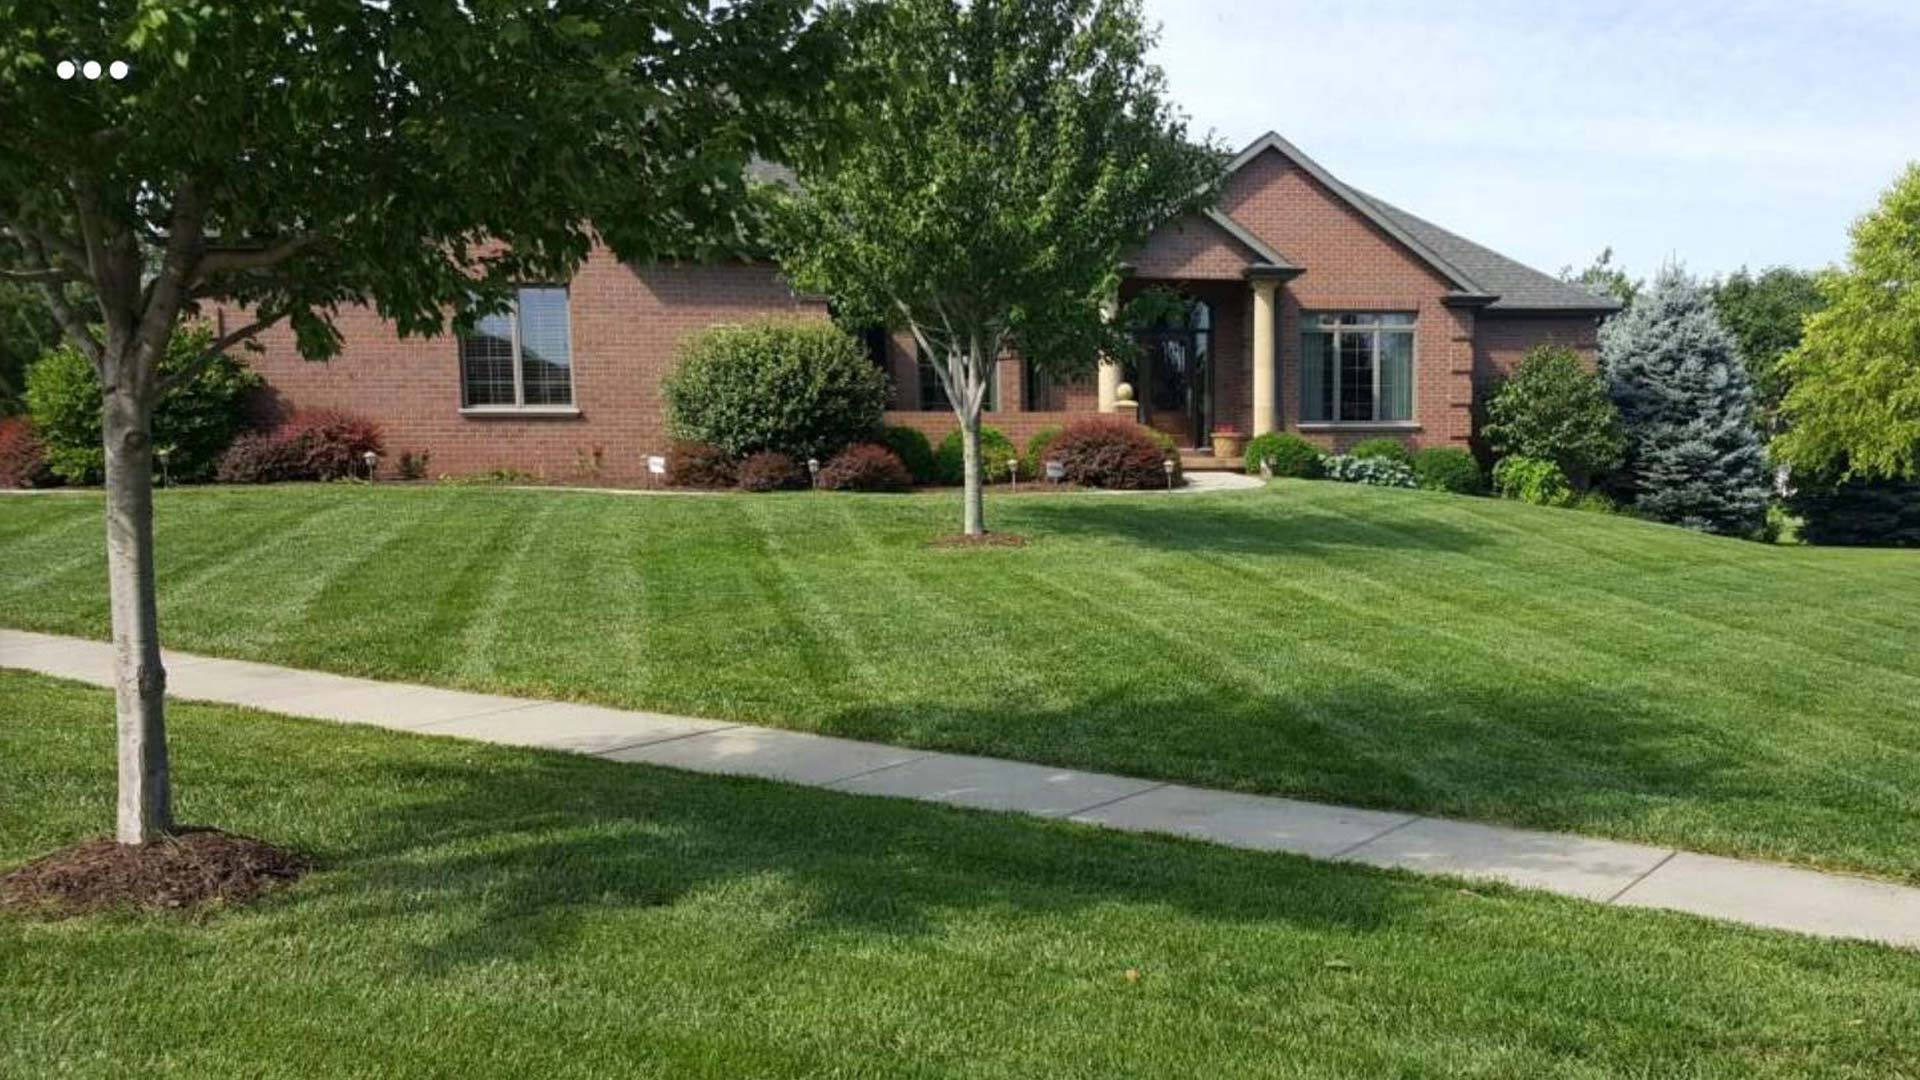 A large residential property in Lincoln, NE that our team maintains the lawn and landscape on a regular basis.